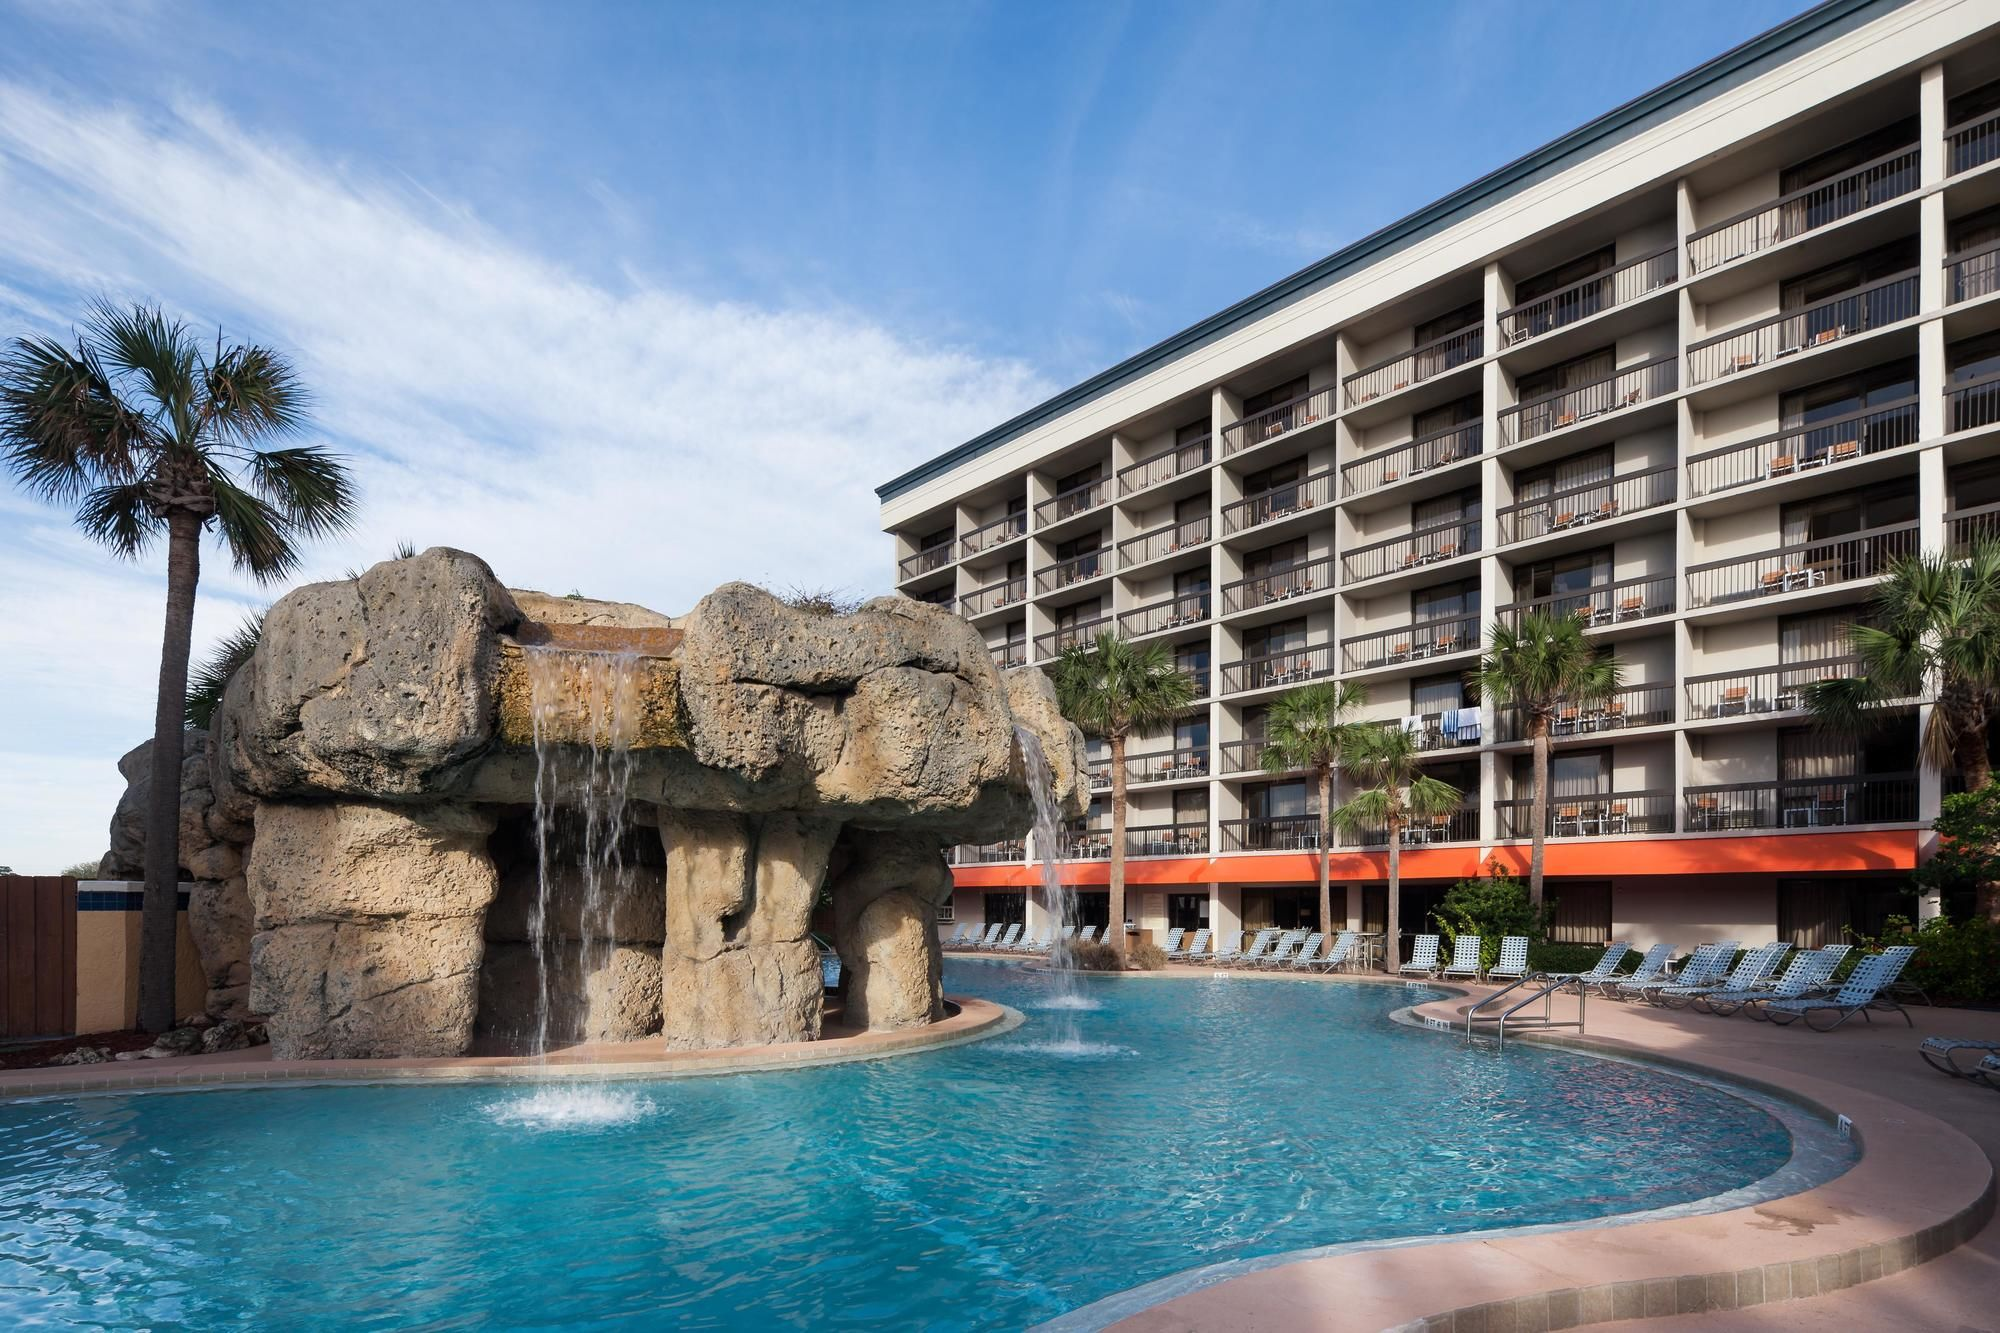 Jacksonville Beach Hotel Coupons For Jacksonville Beach Florida Freehotelcoupons Com